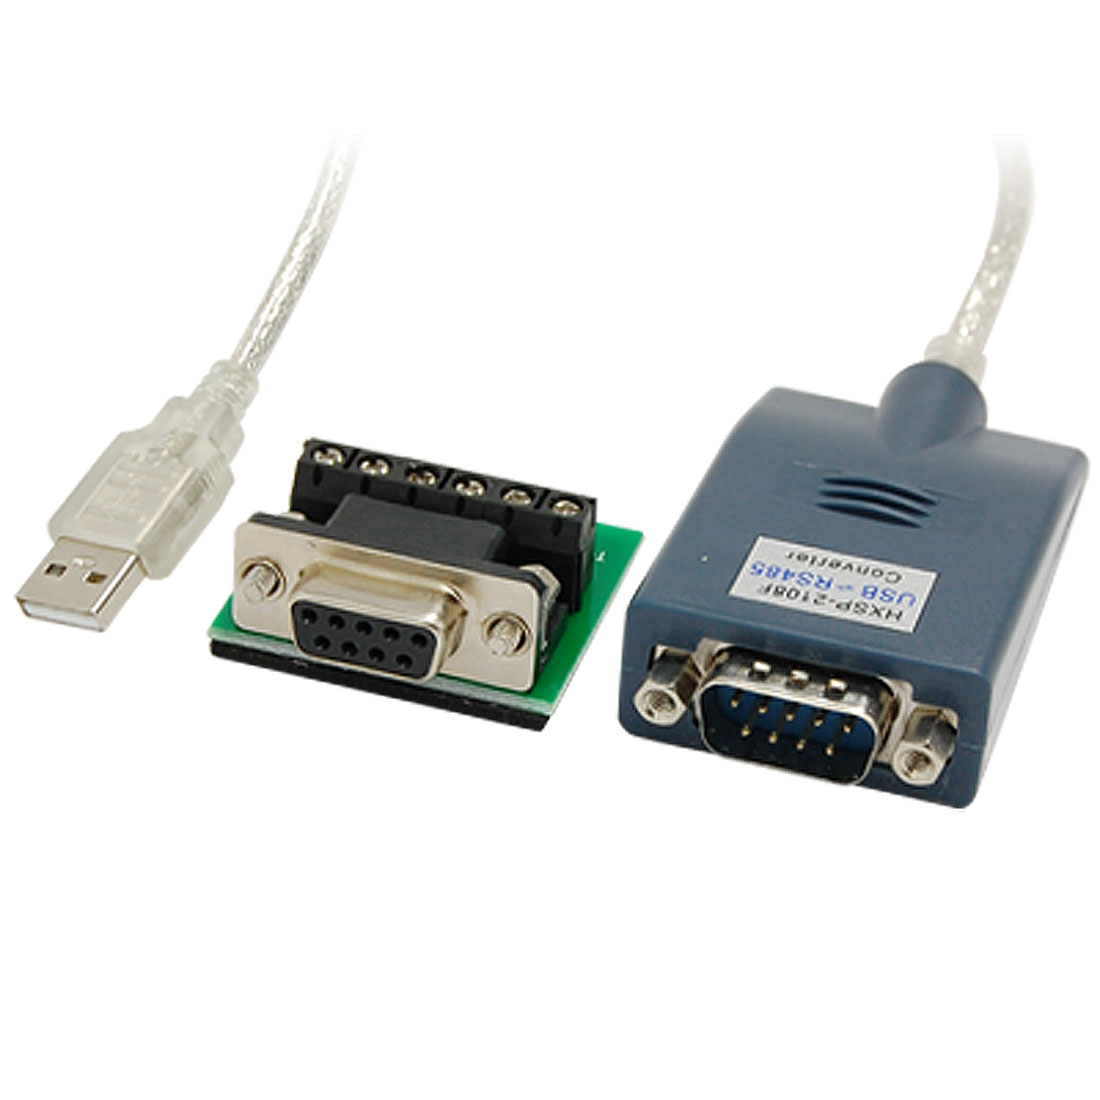 USB 2.0 to RS-485 RS-422 Serial Converter Adapter Cable